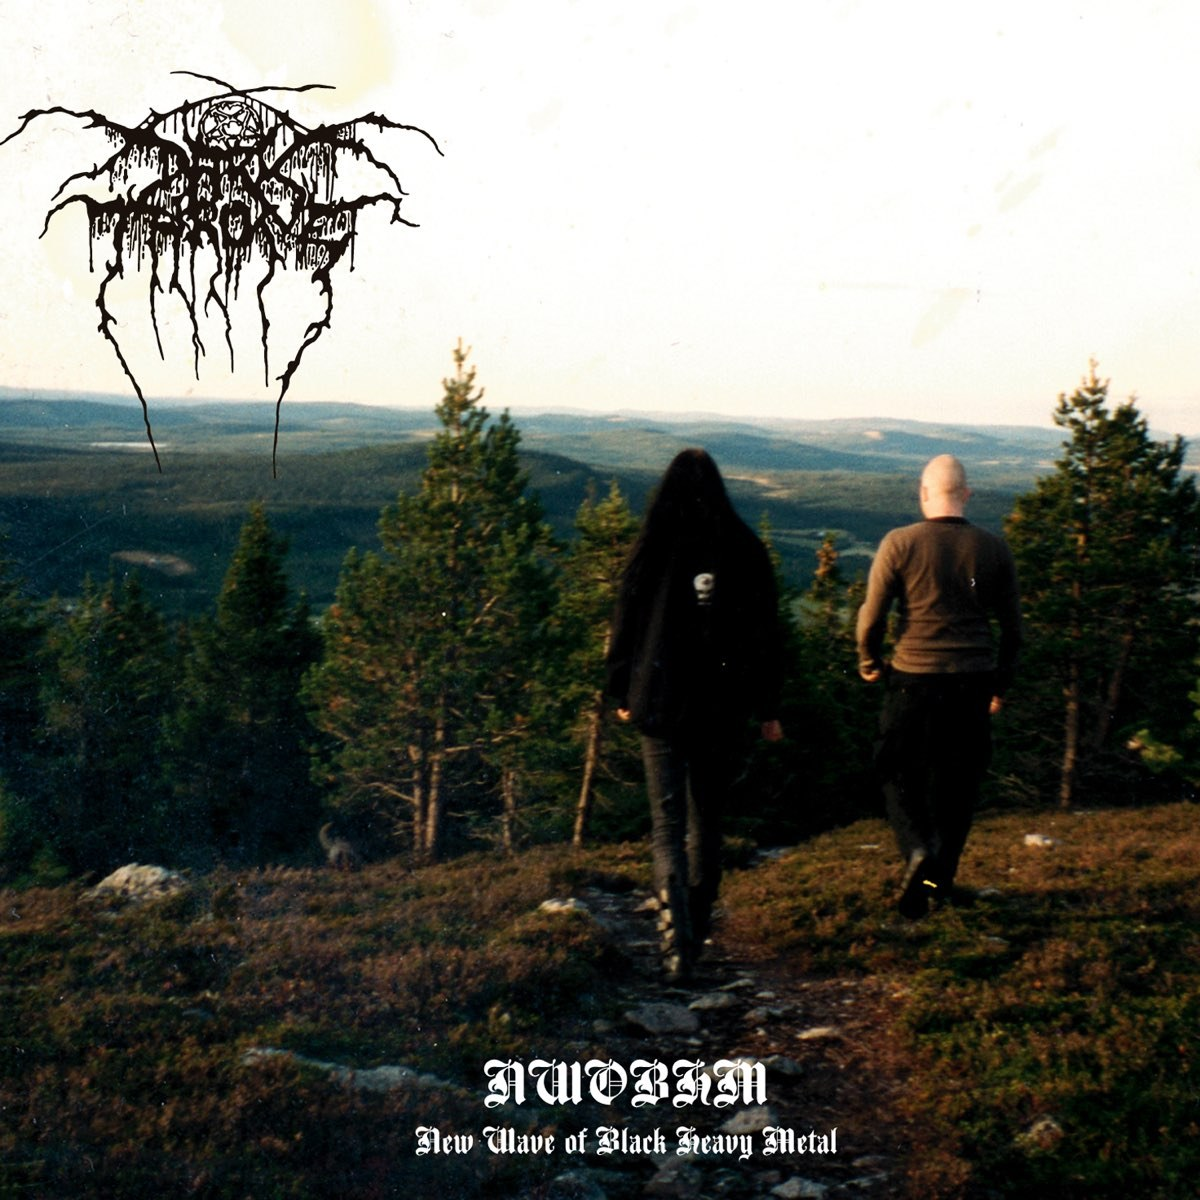 Darkthrone - NWOBHM (New Wave of Black Heavy Metal)